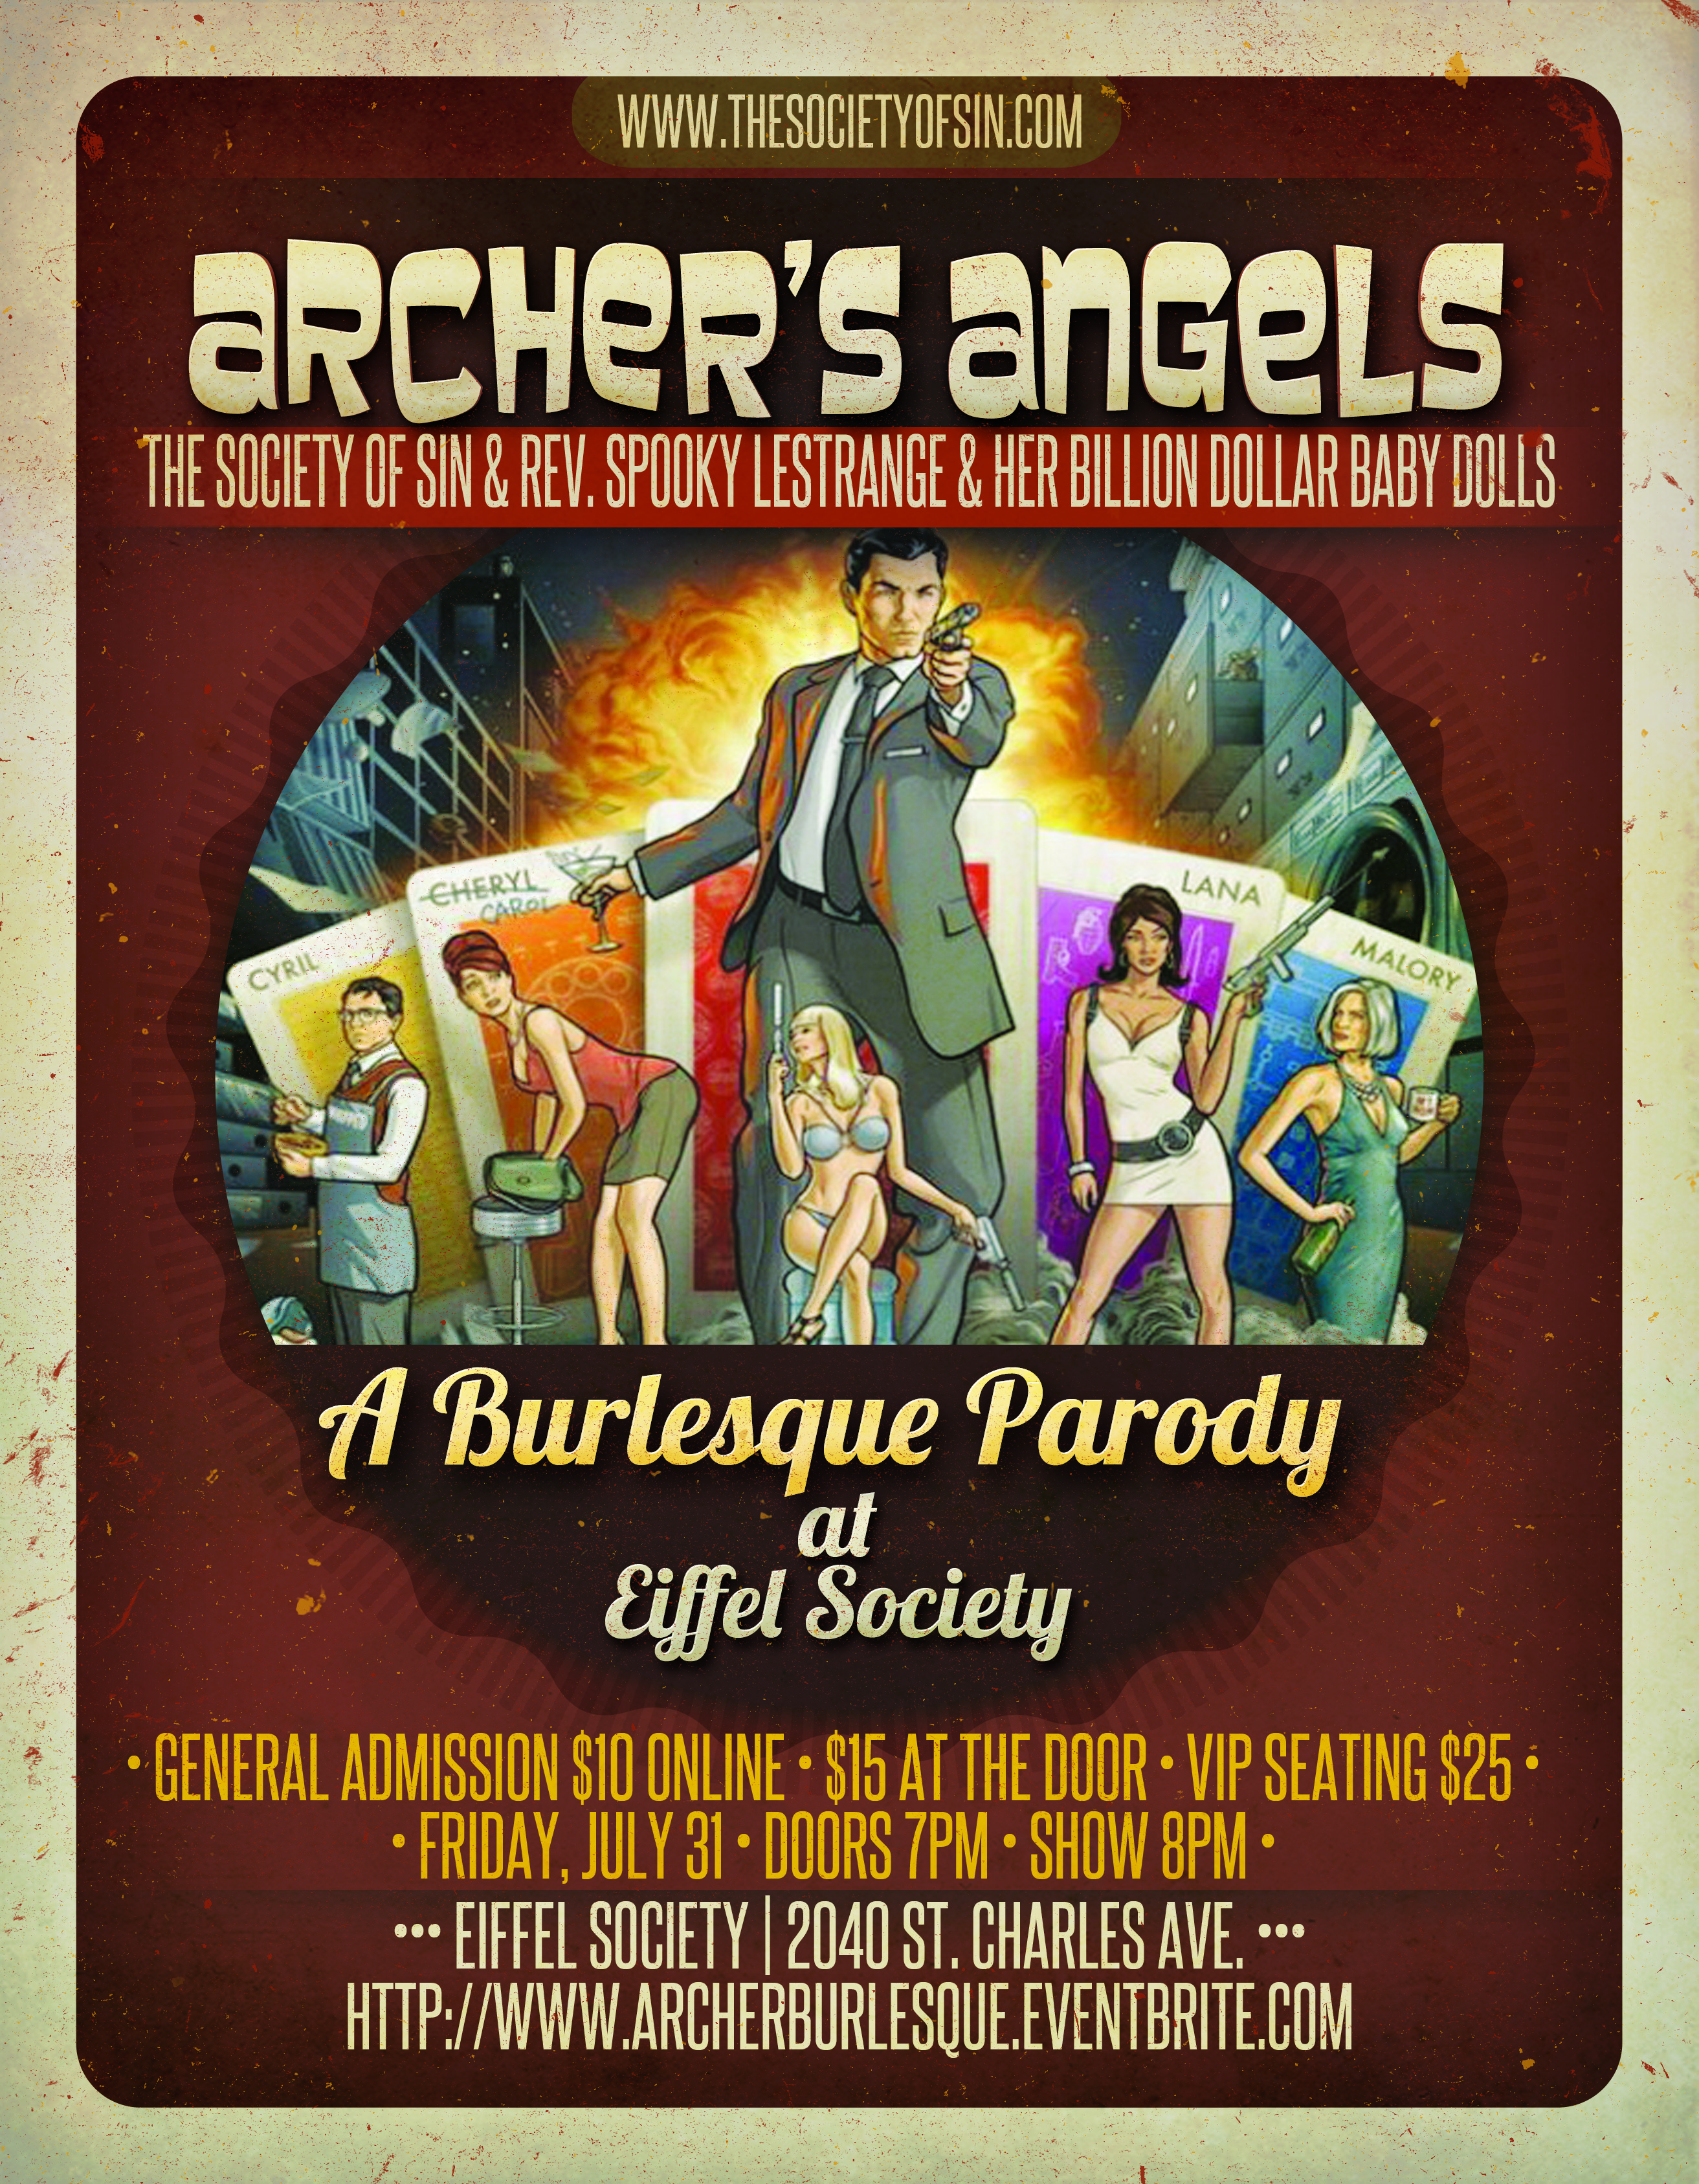 Archer's Angels Burlesque Parody